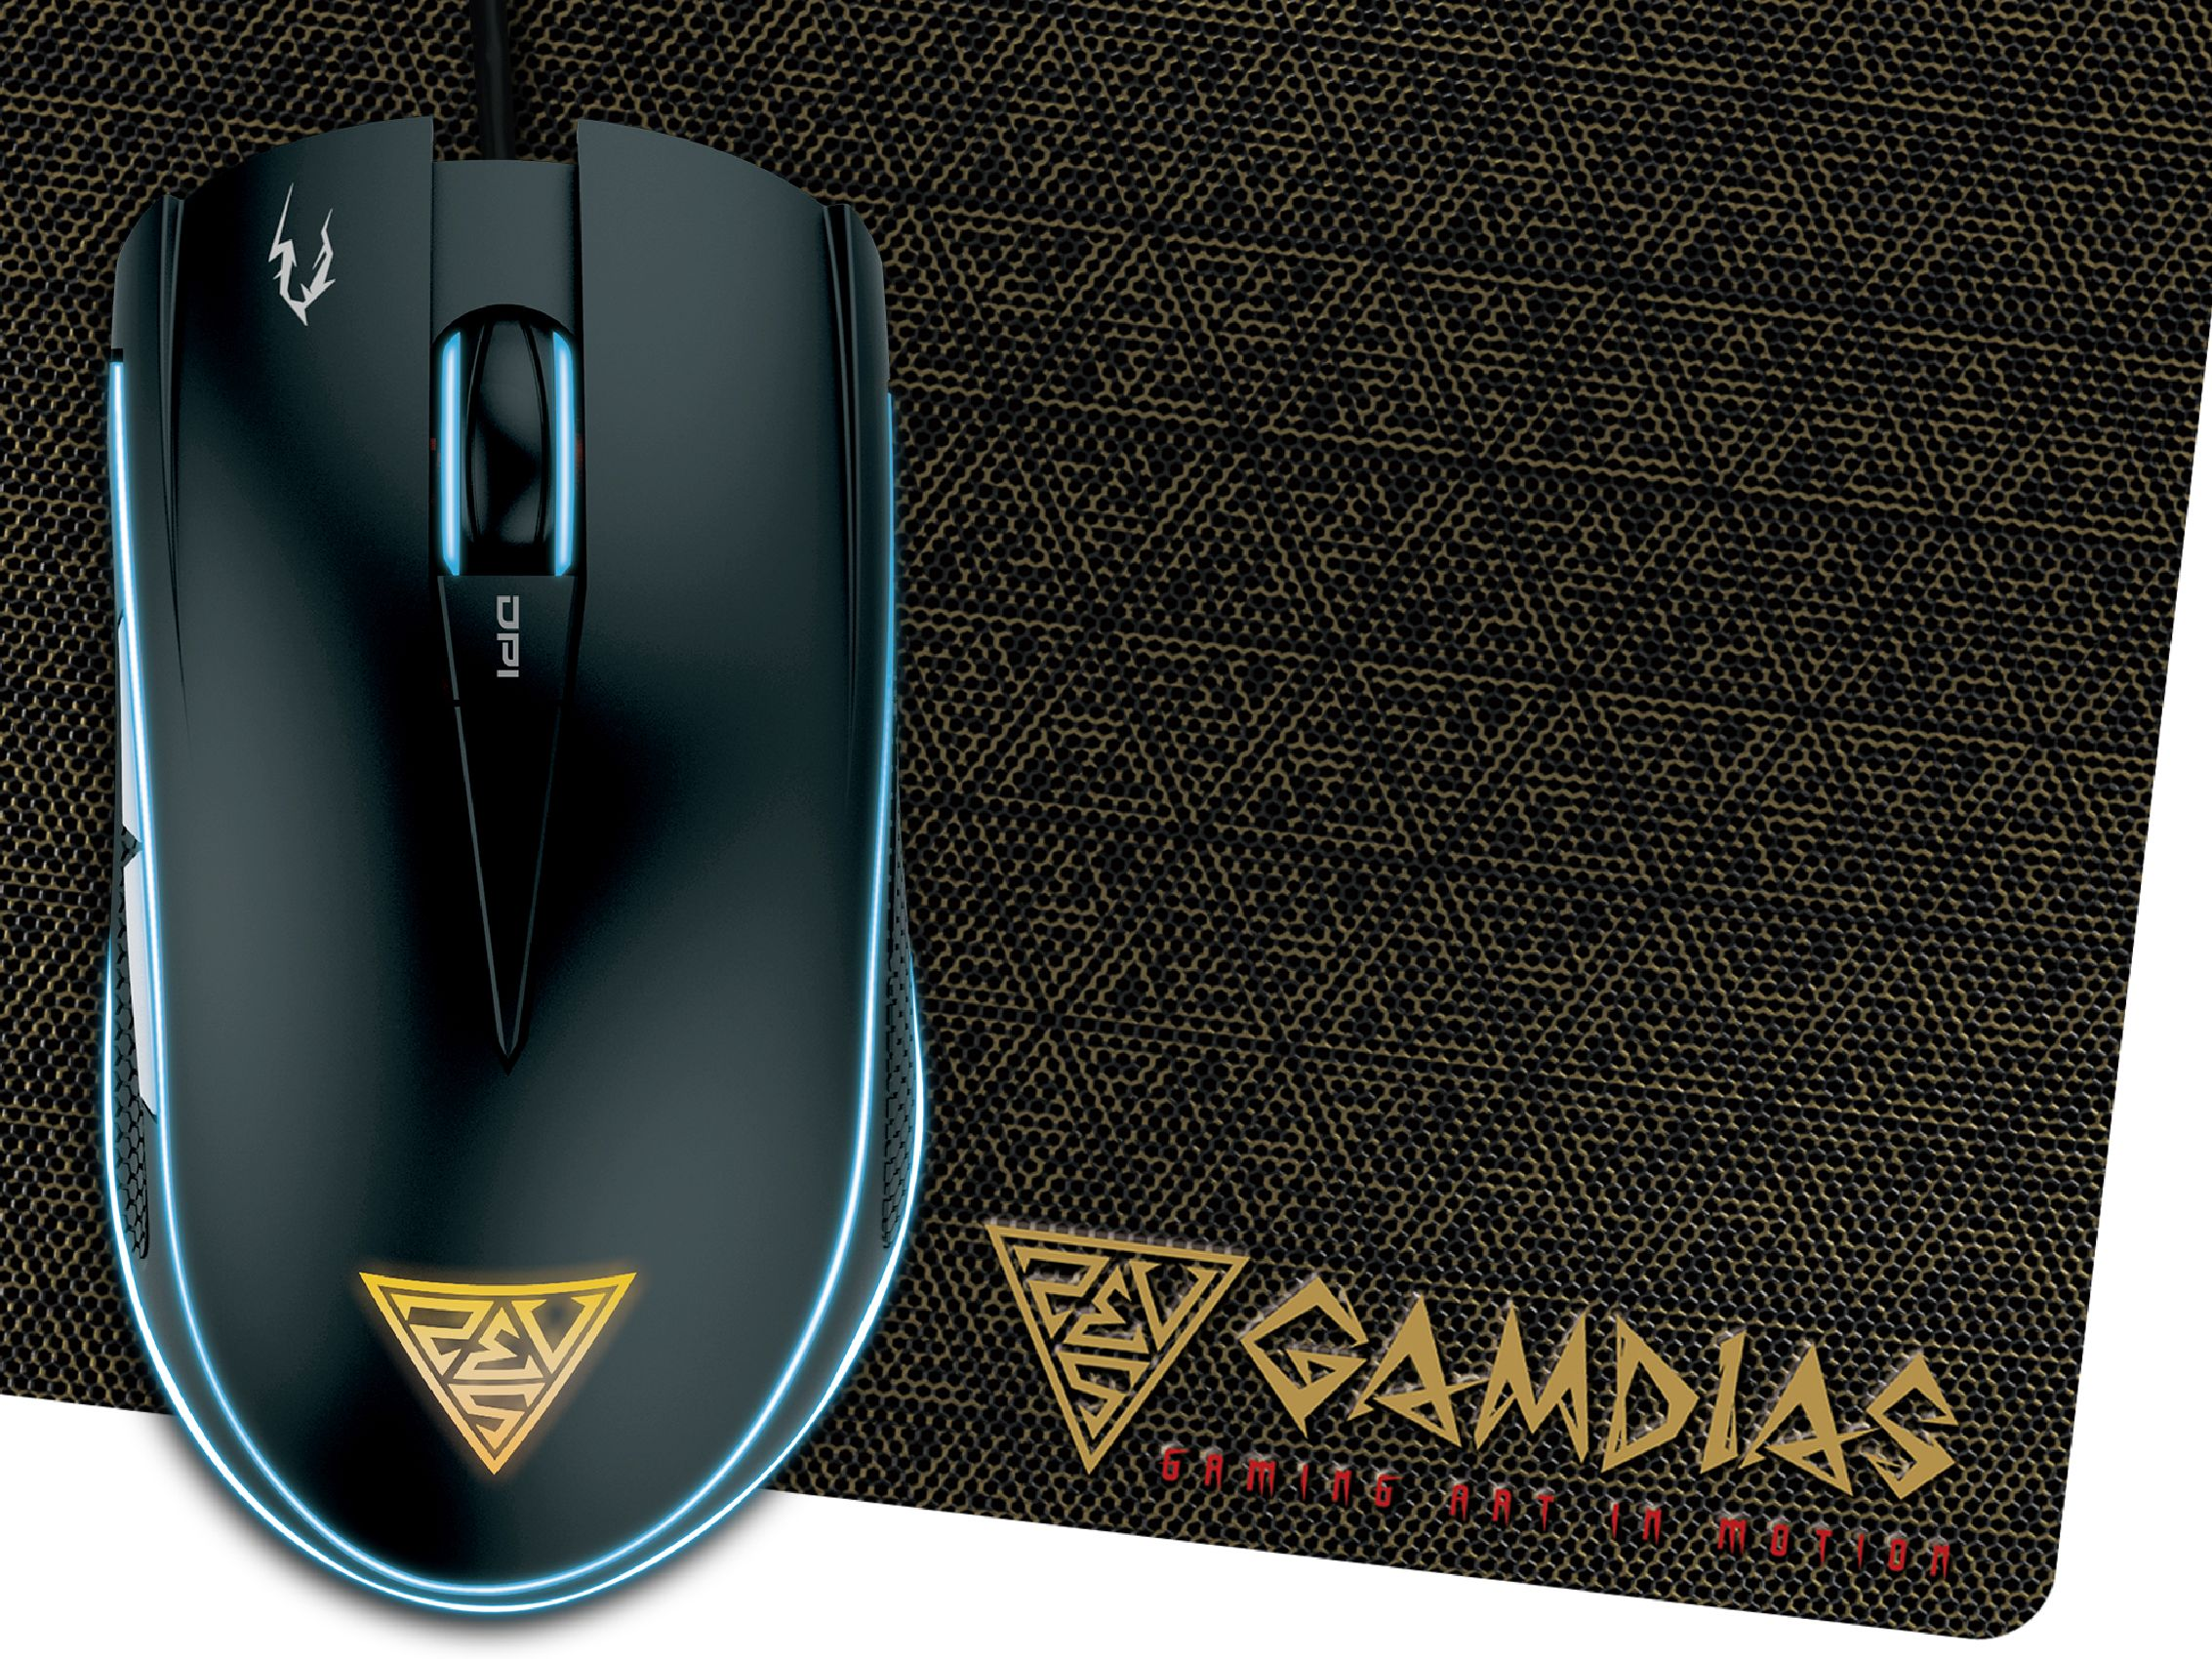 Gamdias Gaming Mouse - ZEUS E1A + PAD NYX E1 - 4200dpi, back